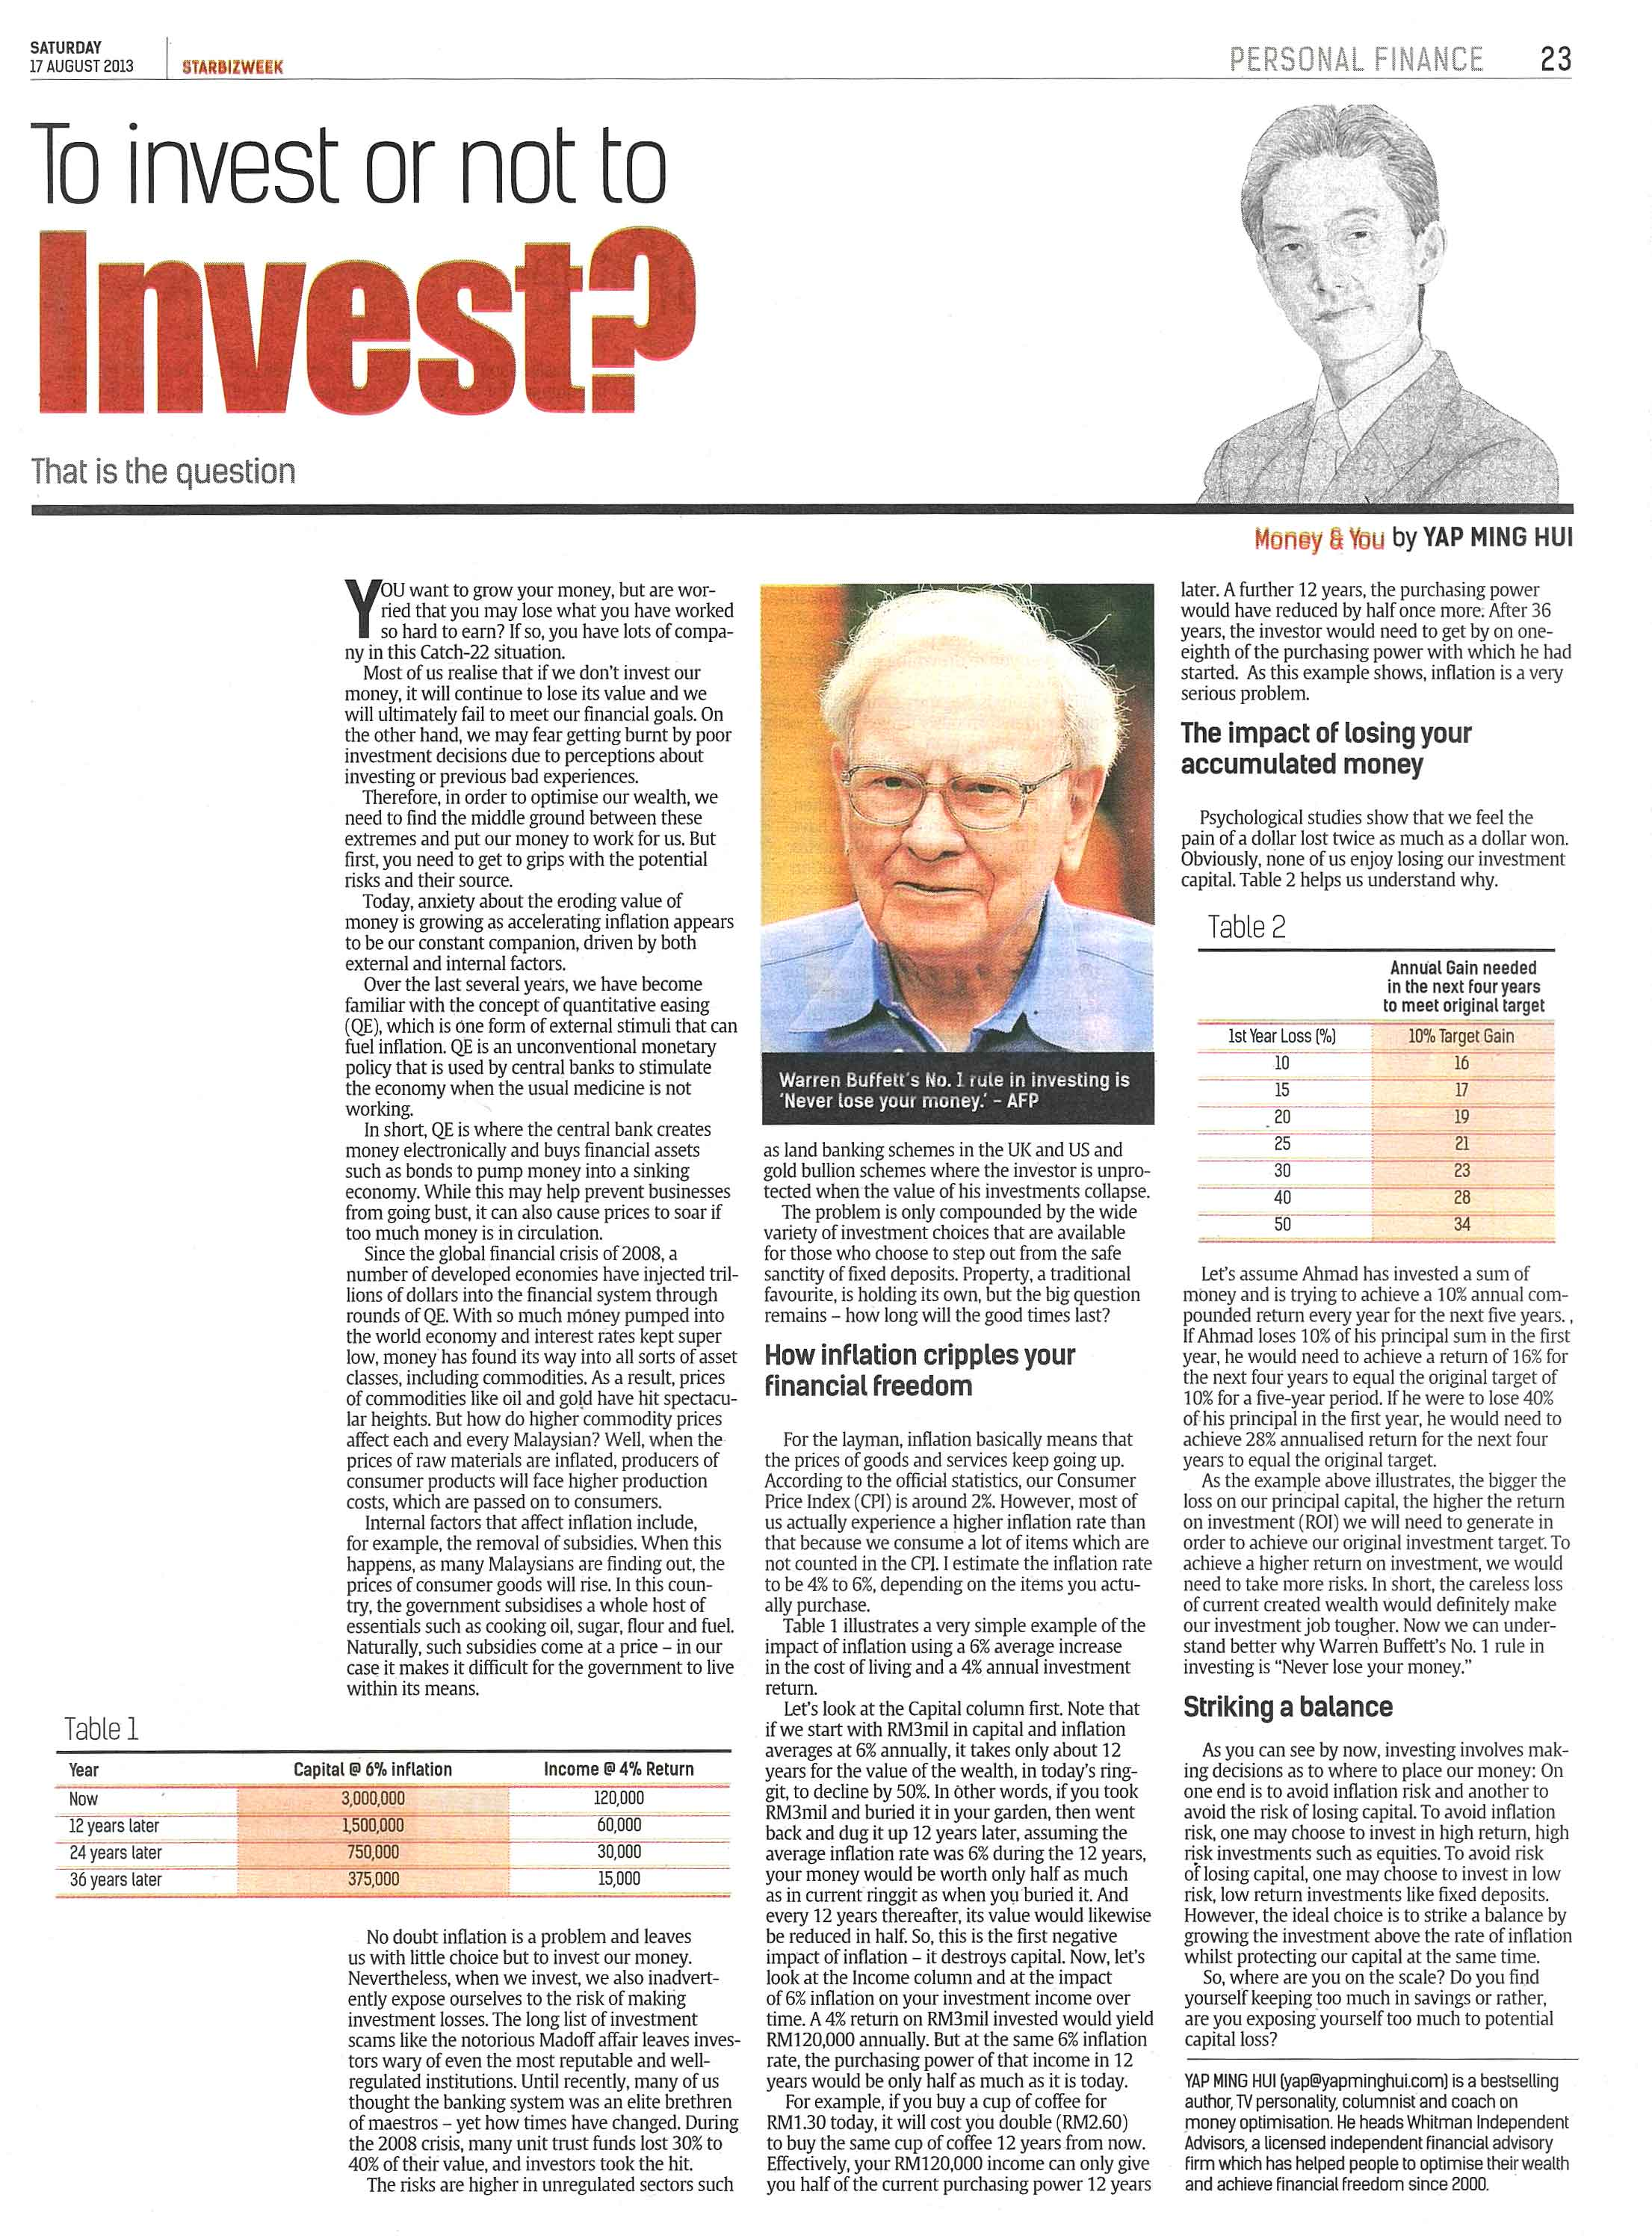 To Invest or not to invest That is the question 17 Aug 2013